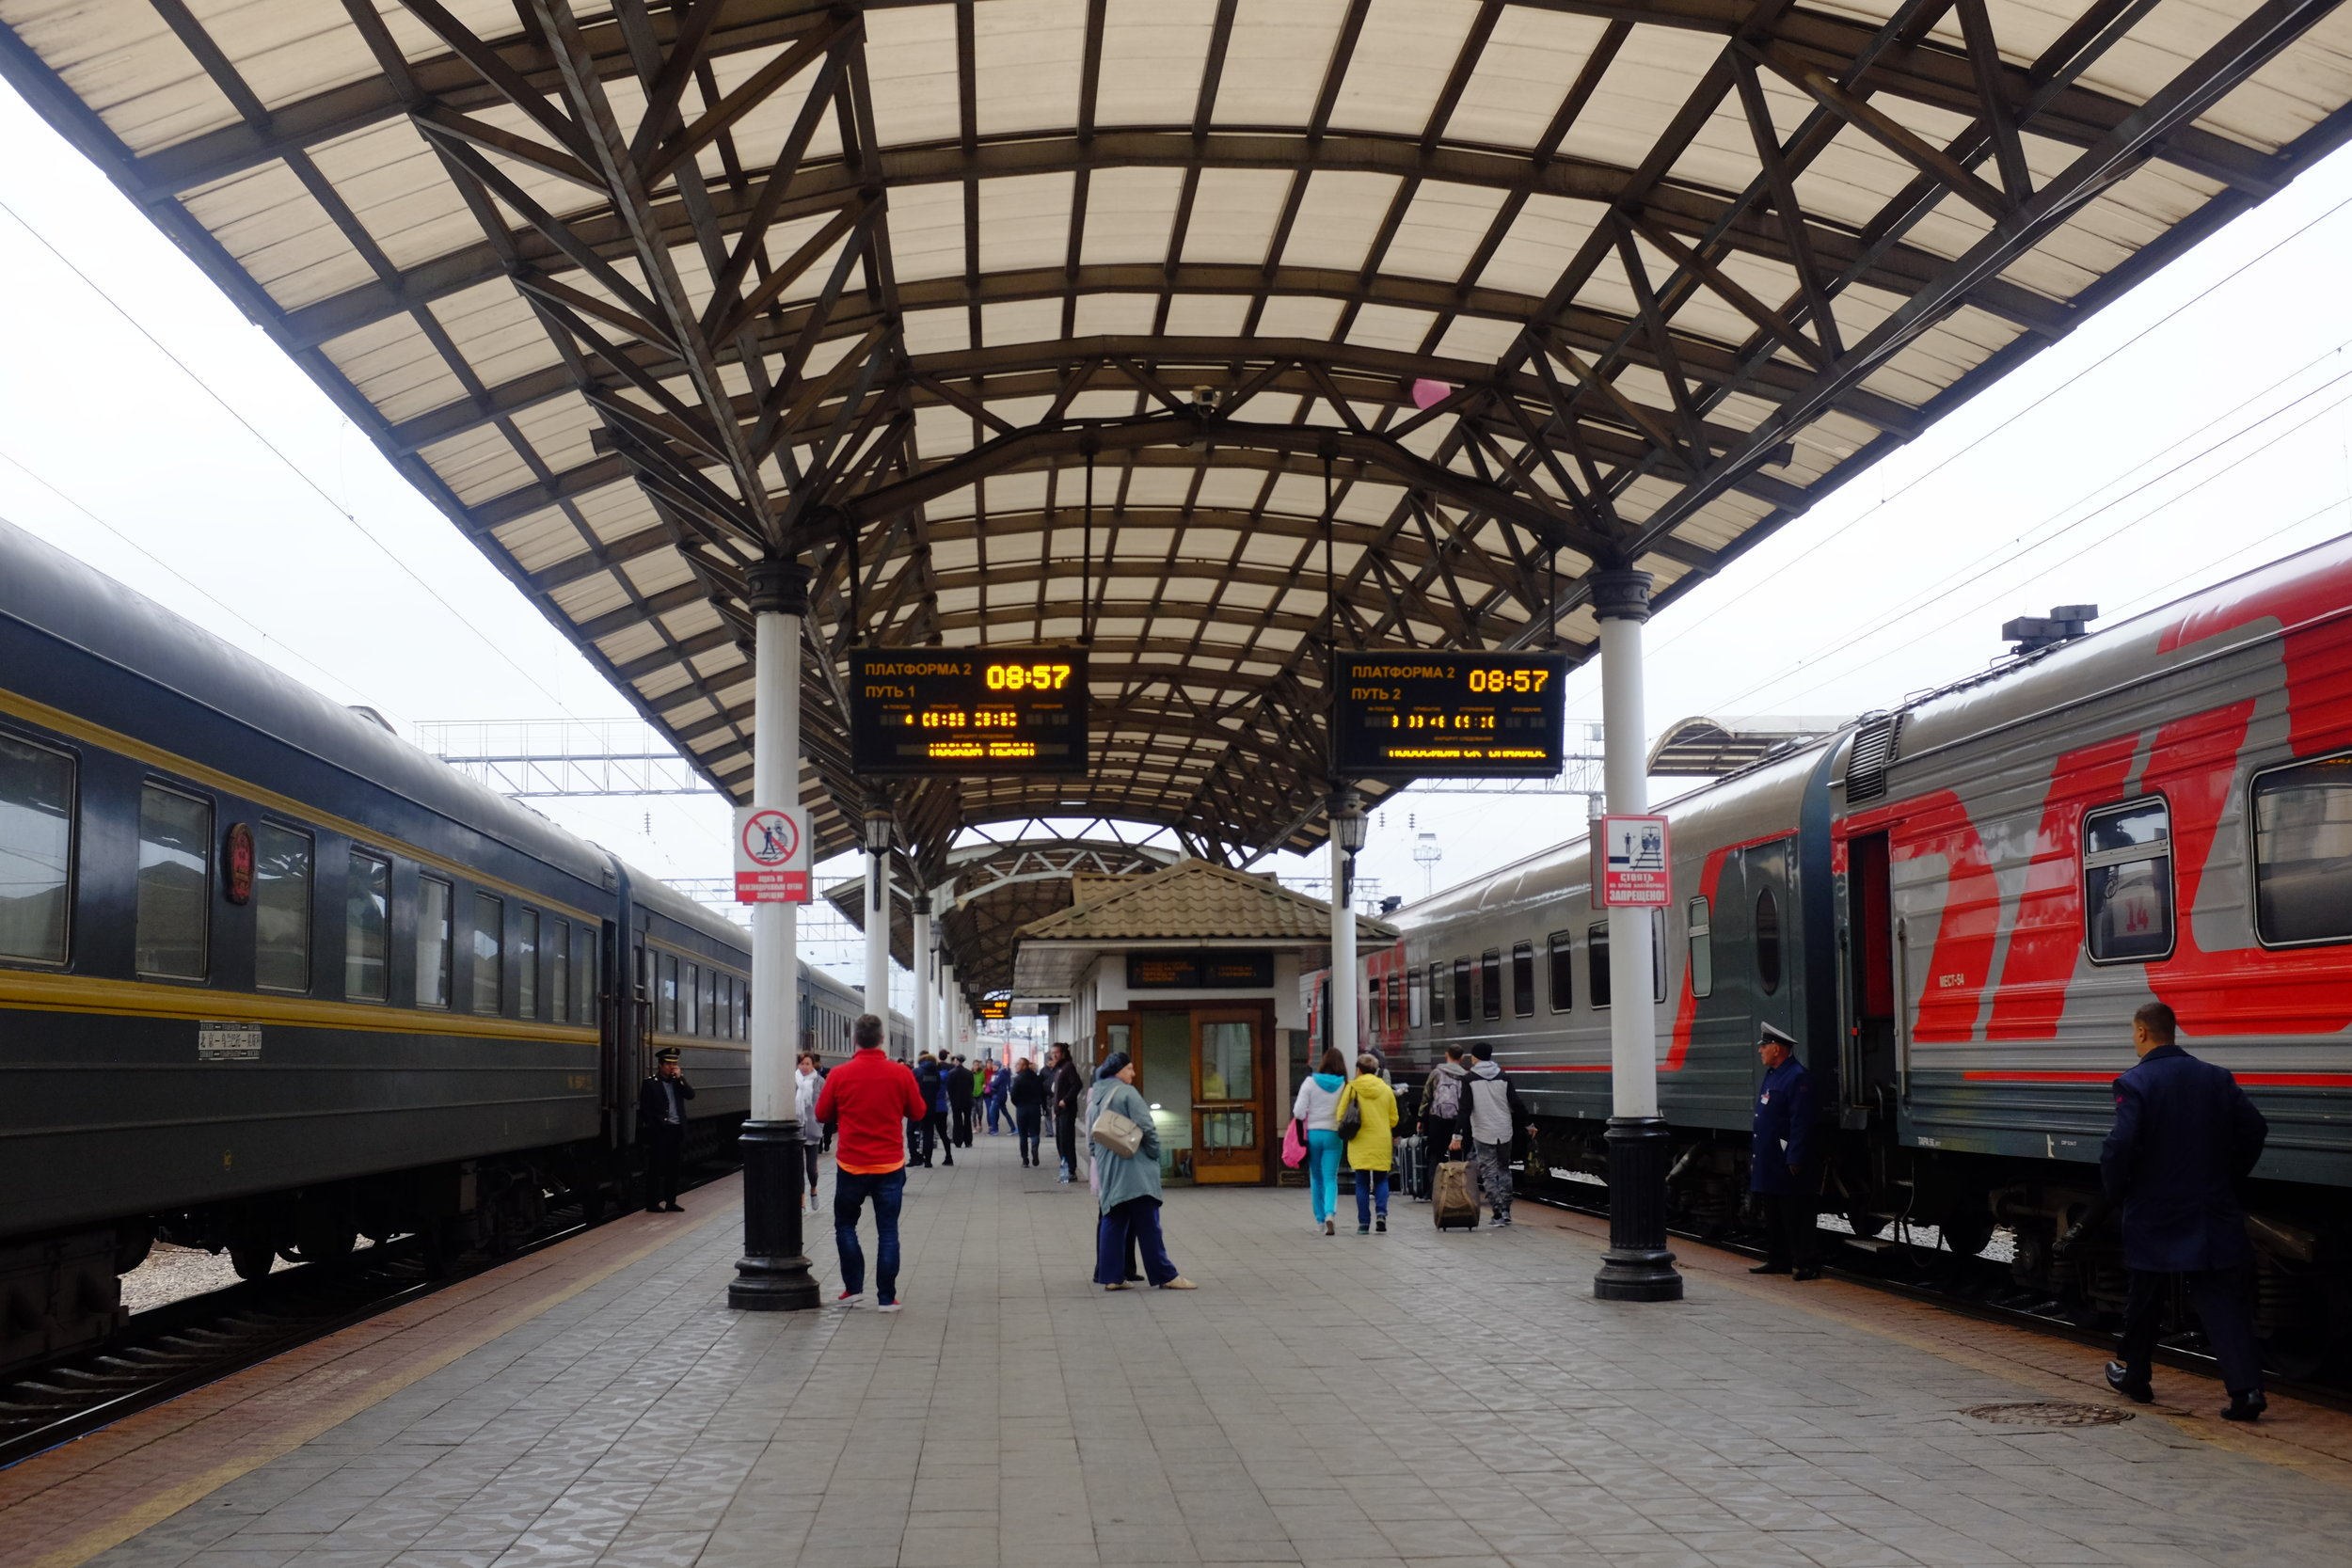 A short stop at Perm, a city in Russia near the Ural Mountains.